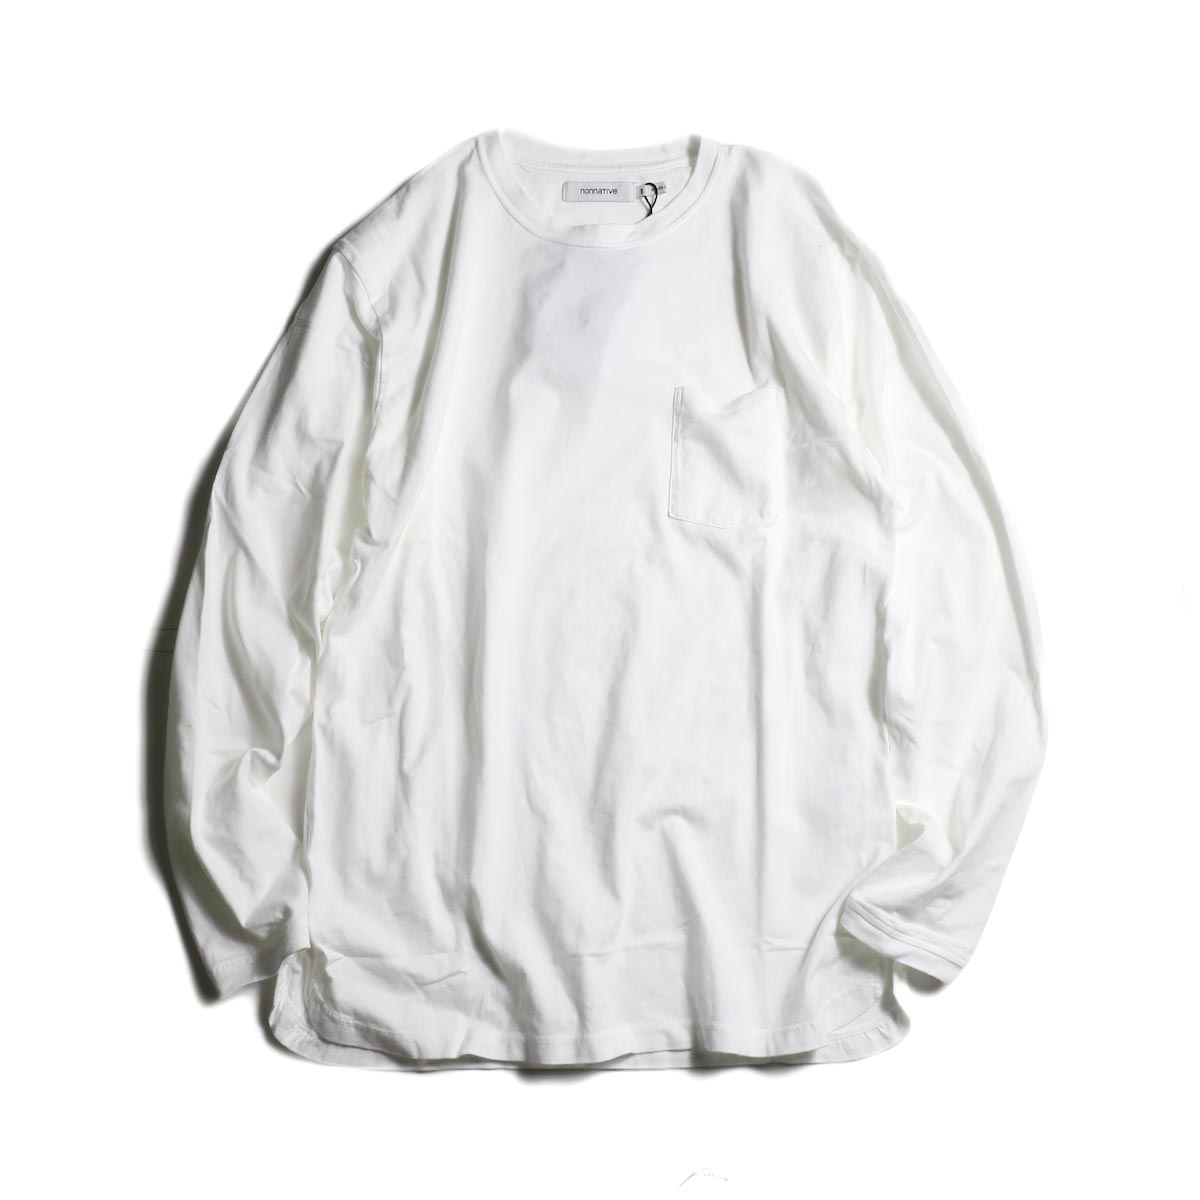 nonnative / DWELLER L/S TEE COTTON JERSEY OVERDYED (White)